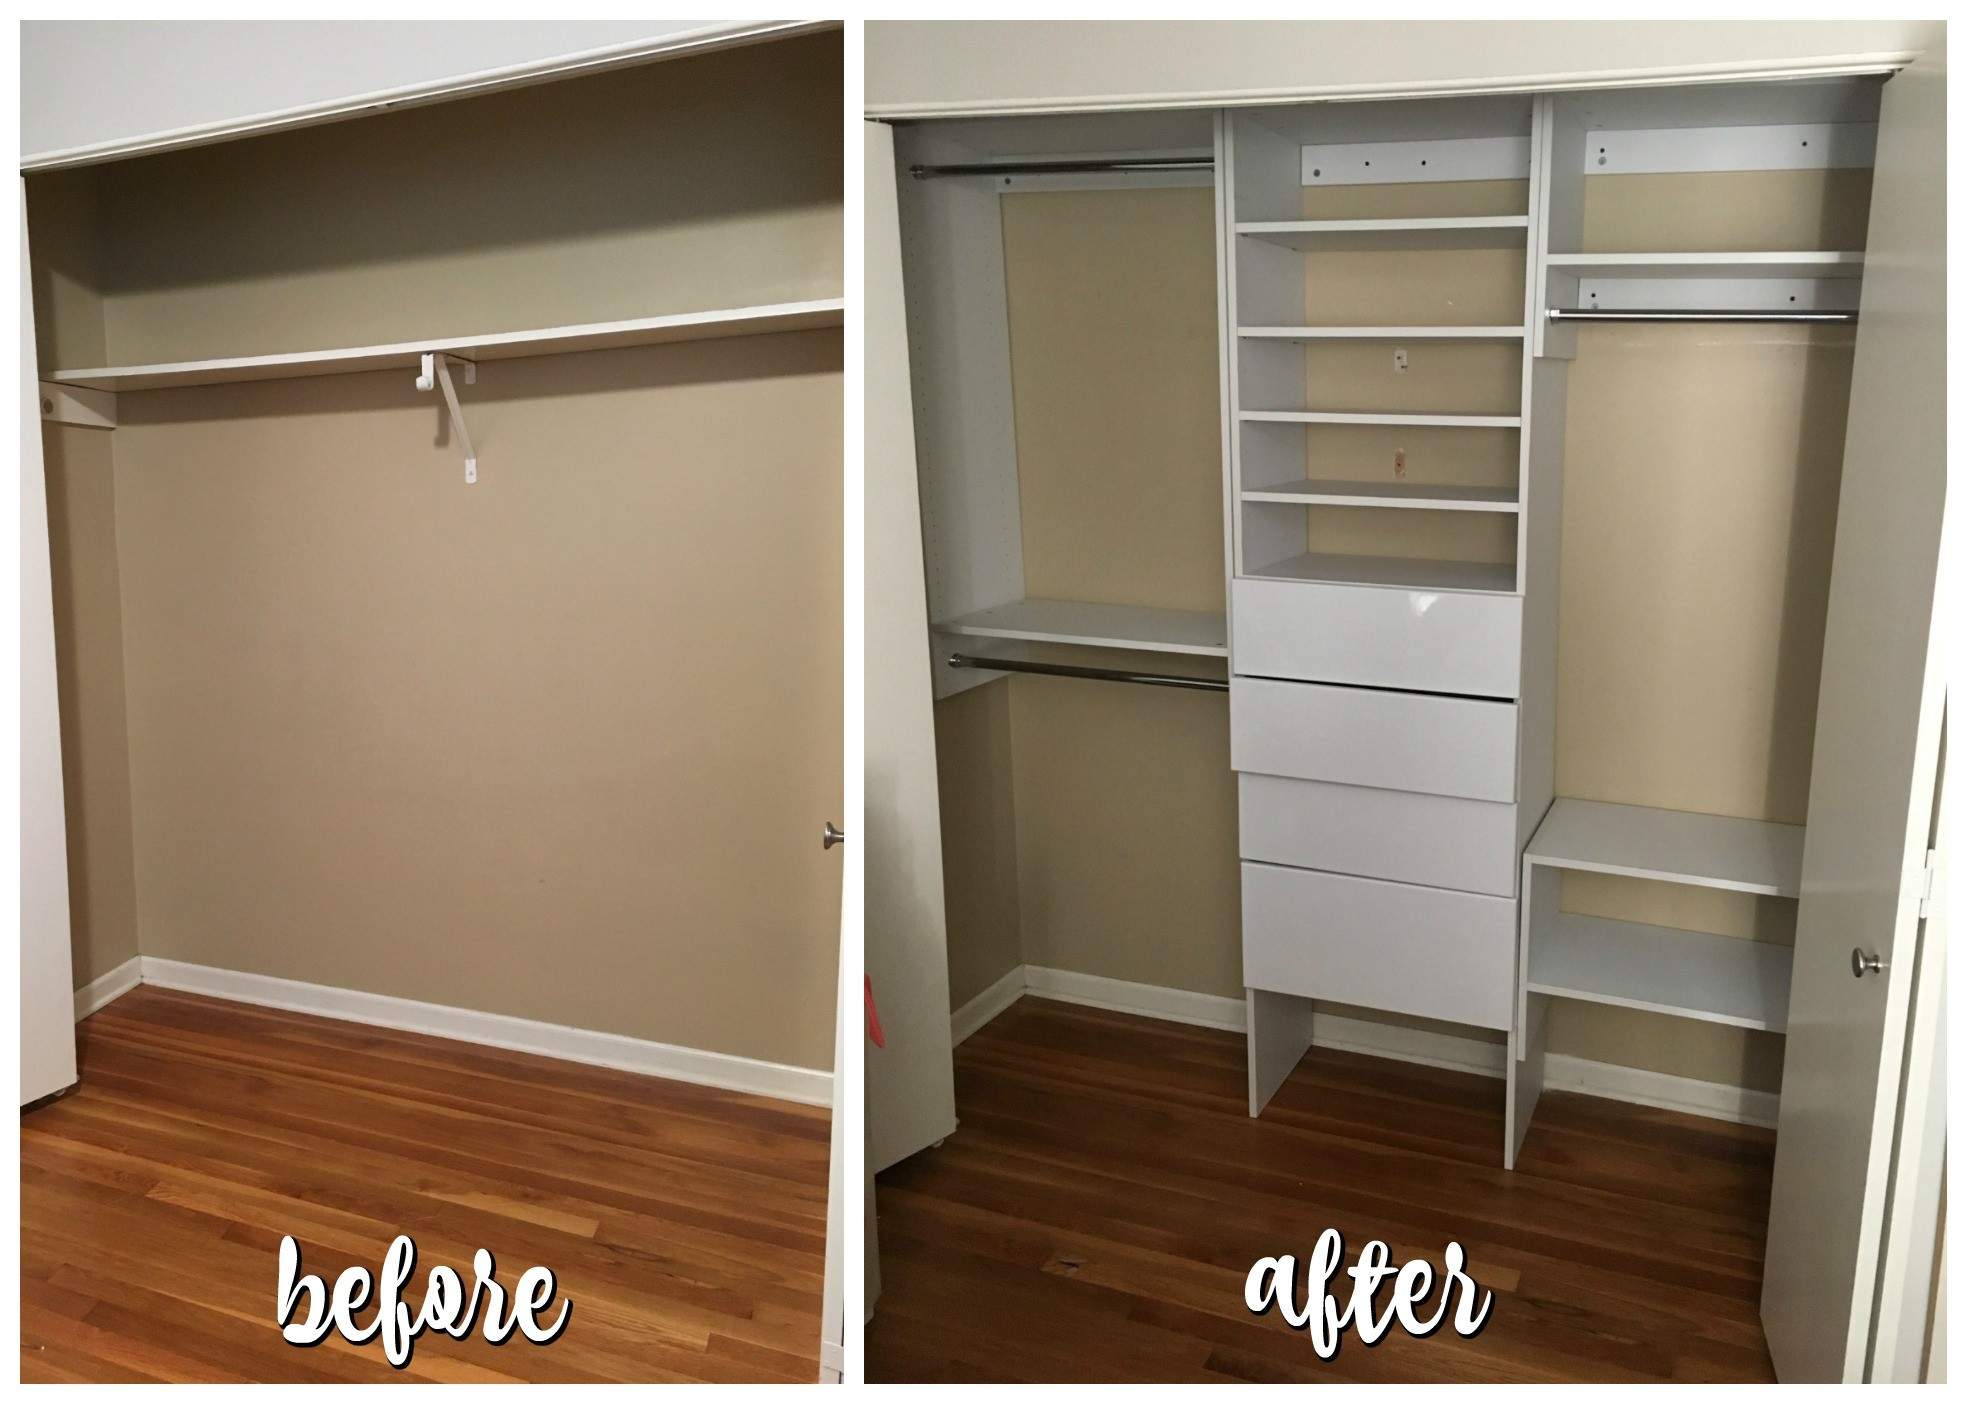 Attirant With The Installation Of My Modular Closet, It Went From Boring And Simple  To Chic And Useful.